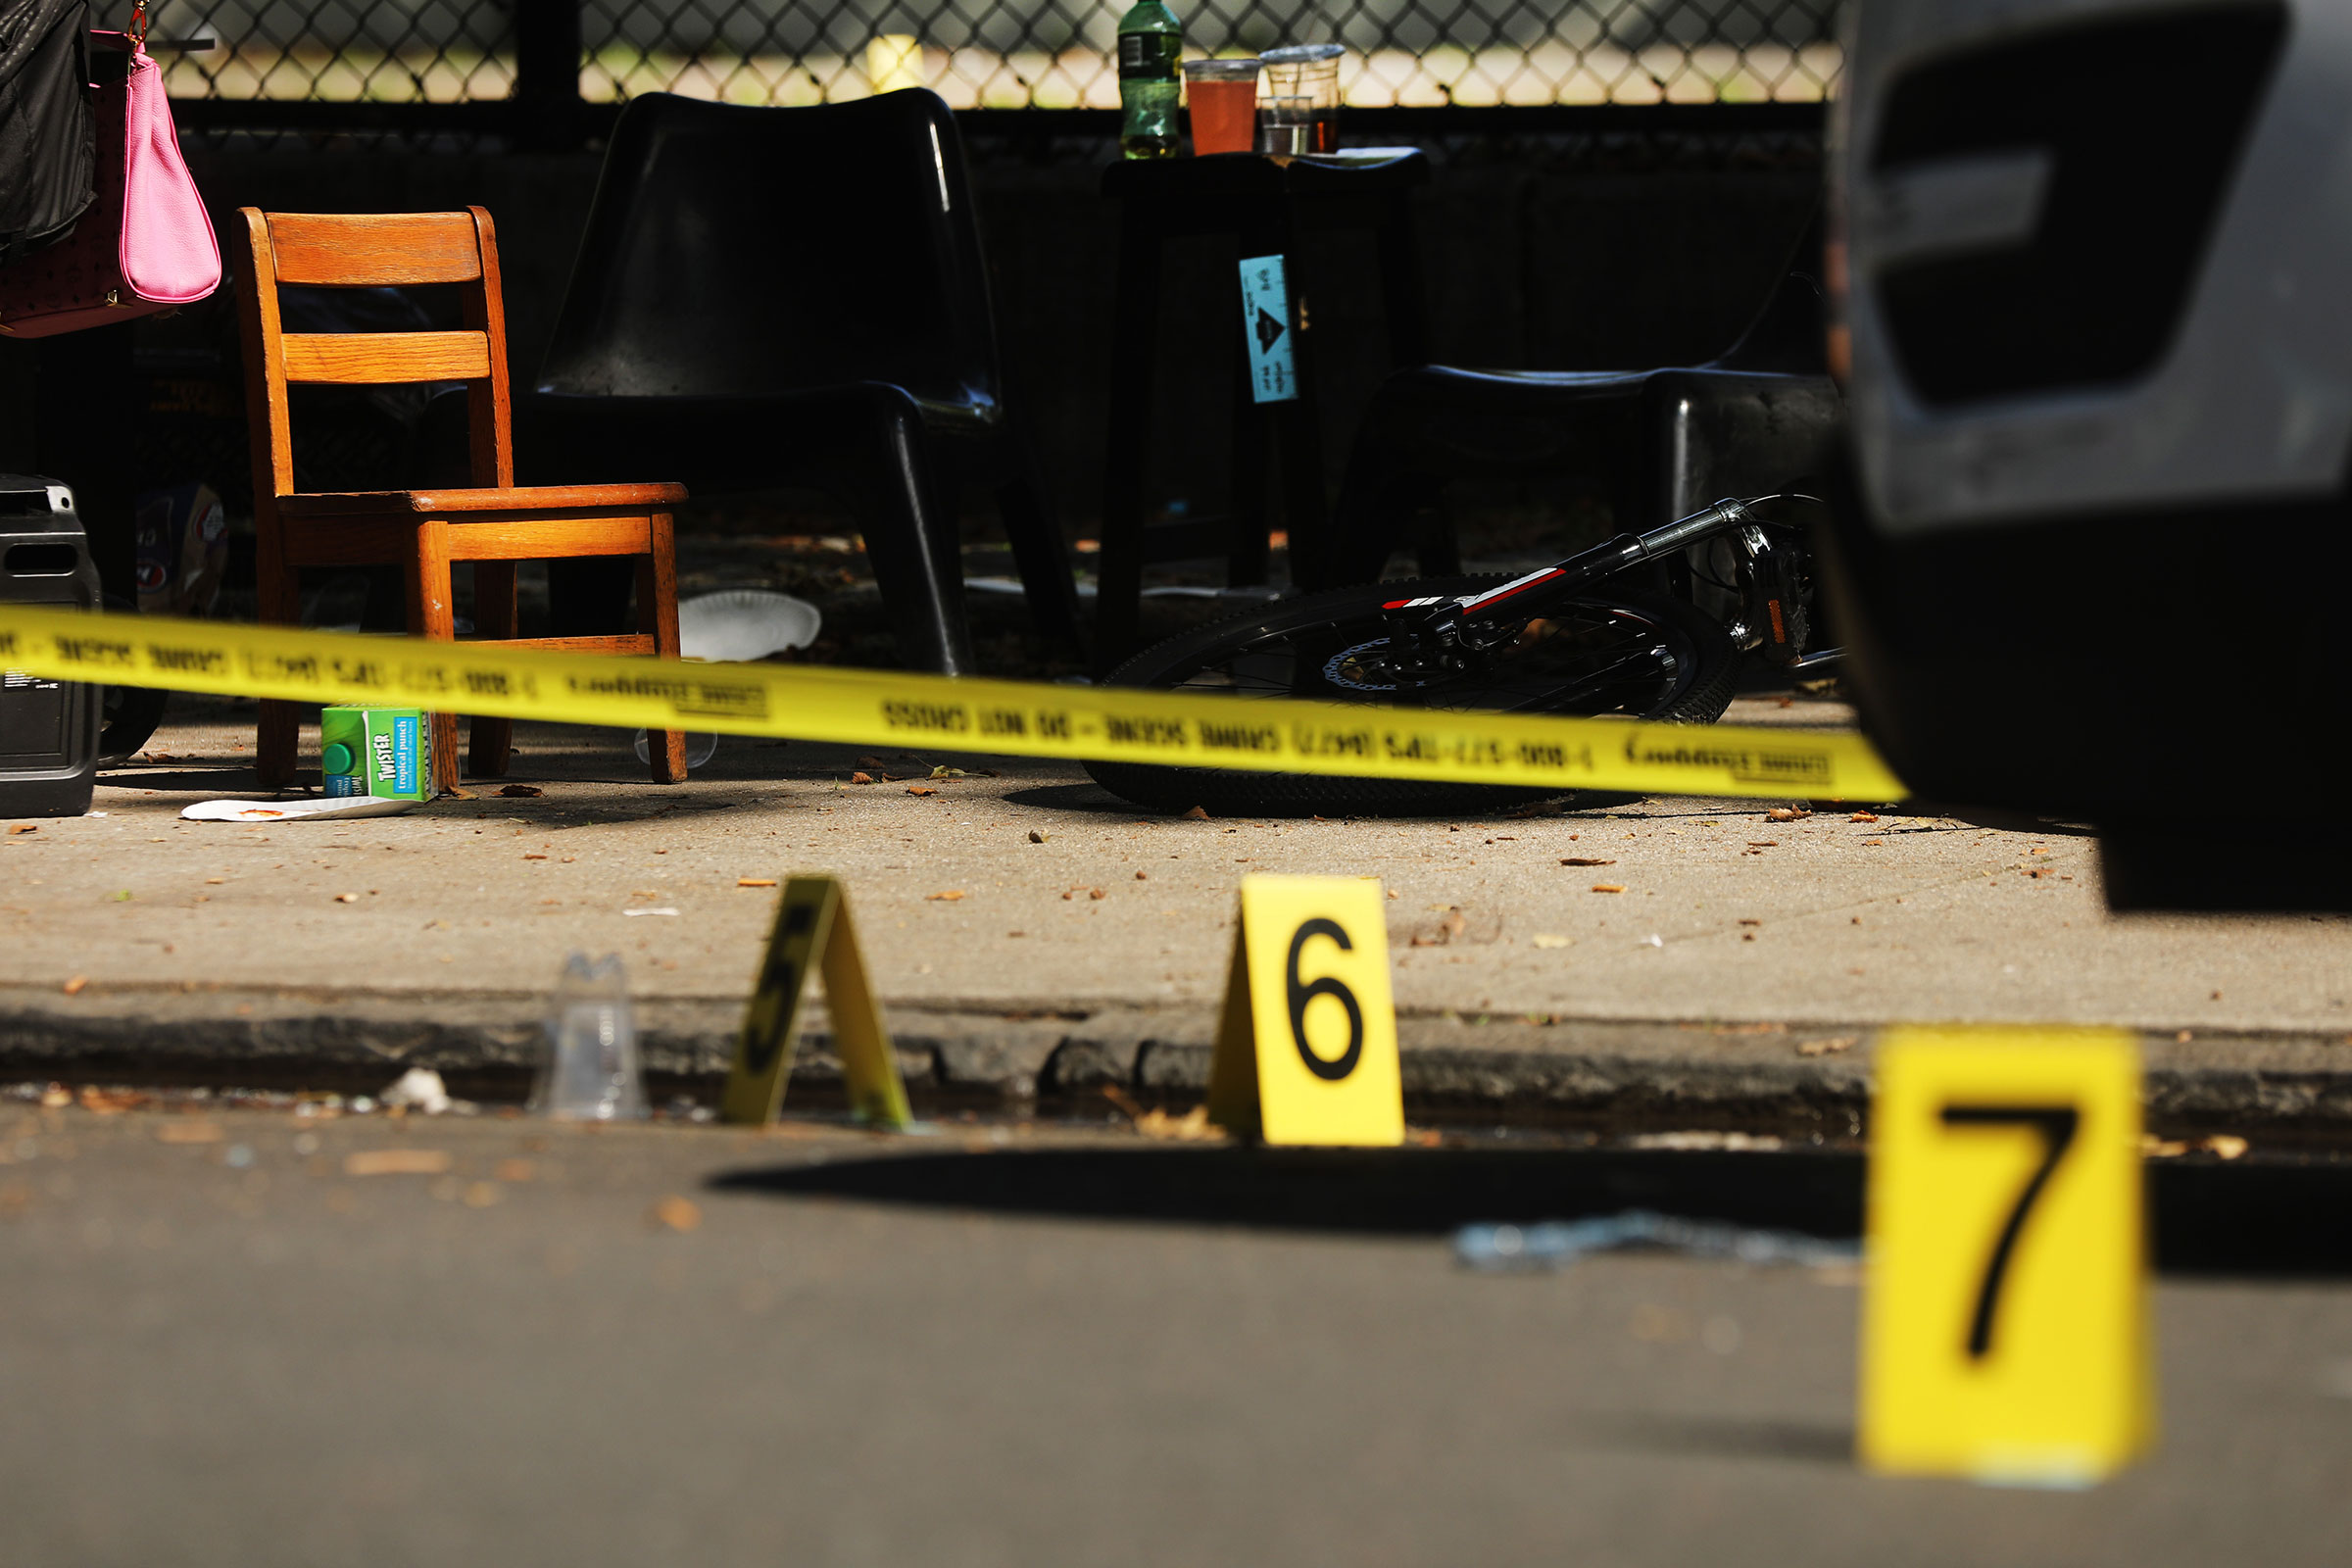 Police ballistic markers stand beside a child's chair and bicycle at a crime scene in Brooklyn where a one year old child was shot and killed on July 13, 2020 in New York City. The 1-year-old boy was shot near a playground during a Sunday picnic when gunfire erupted.